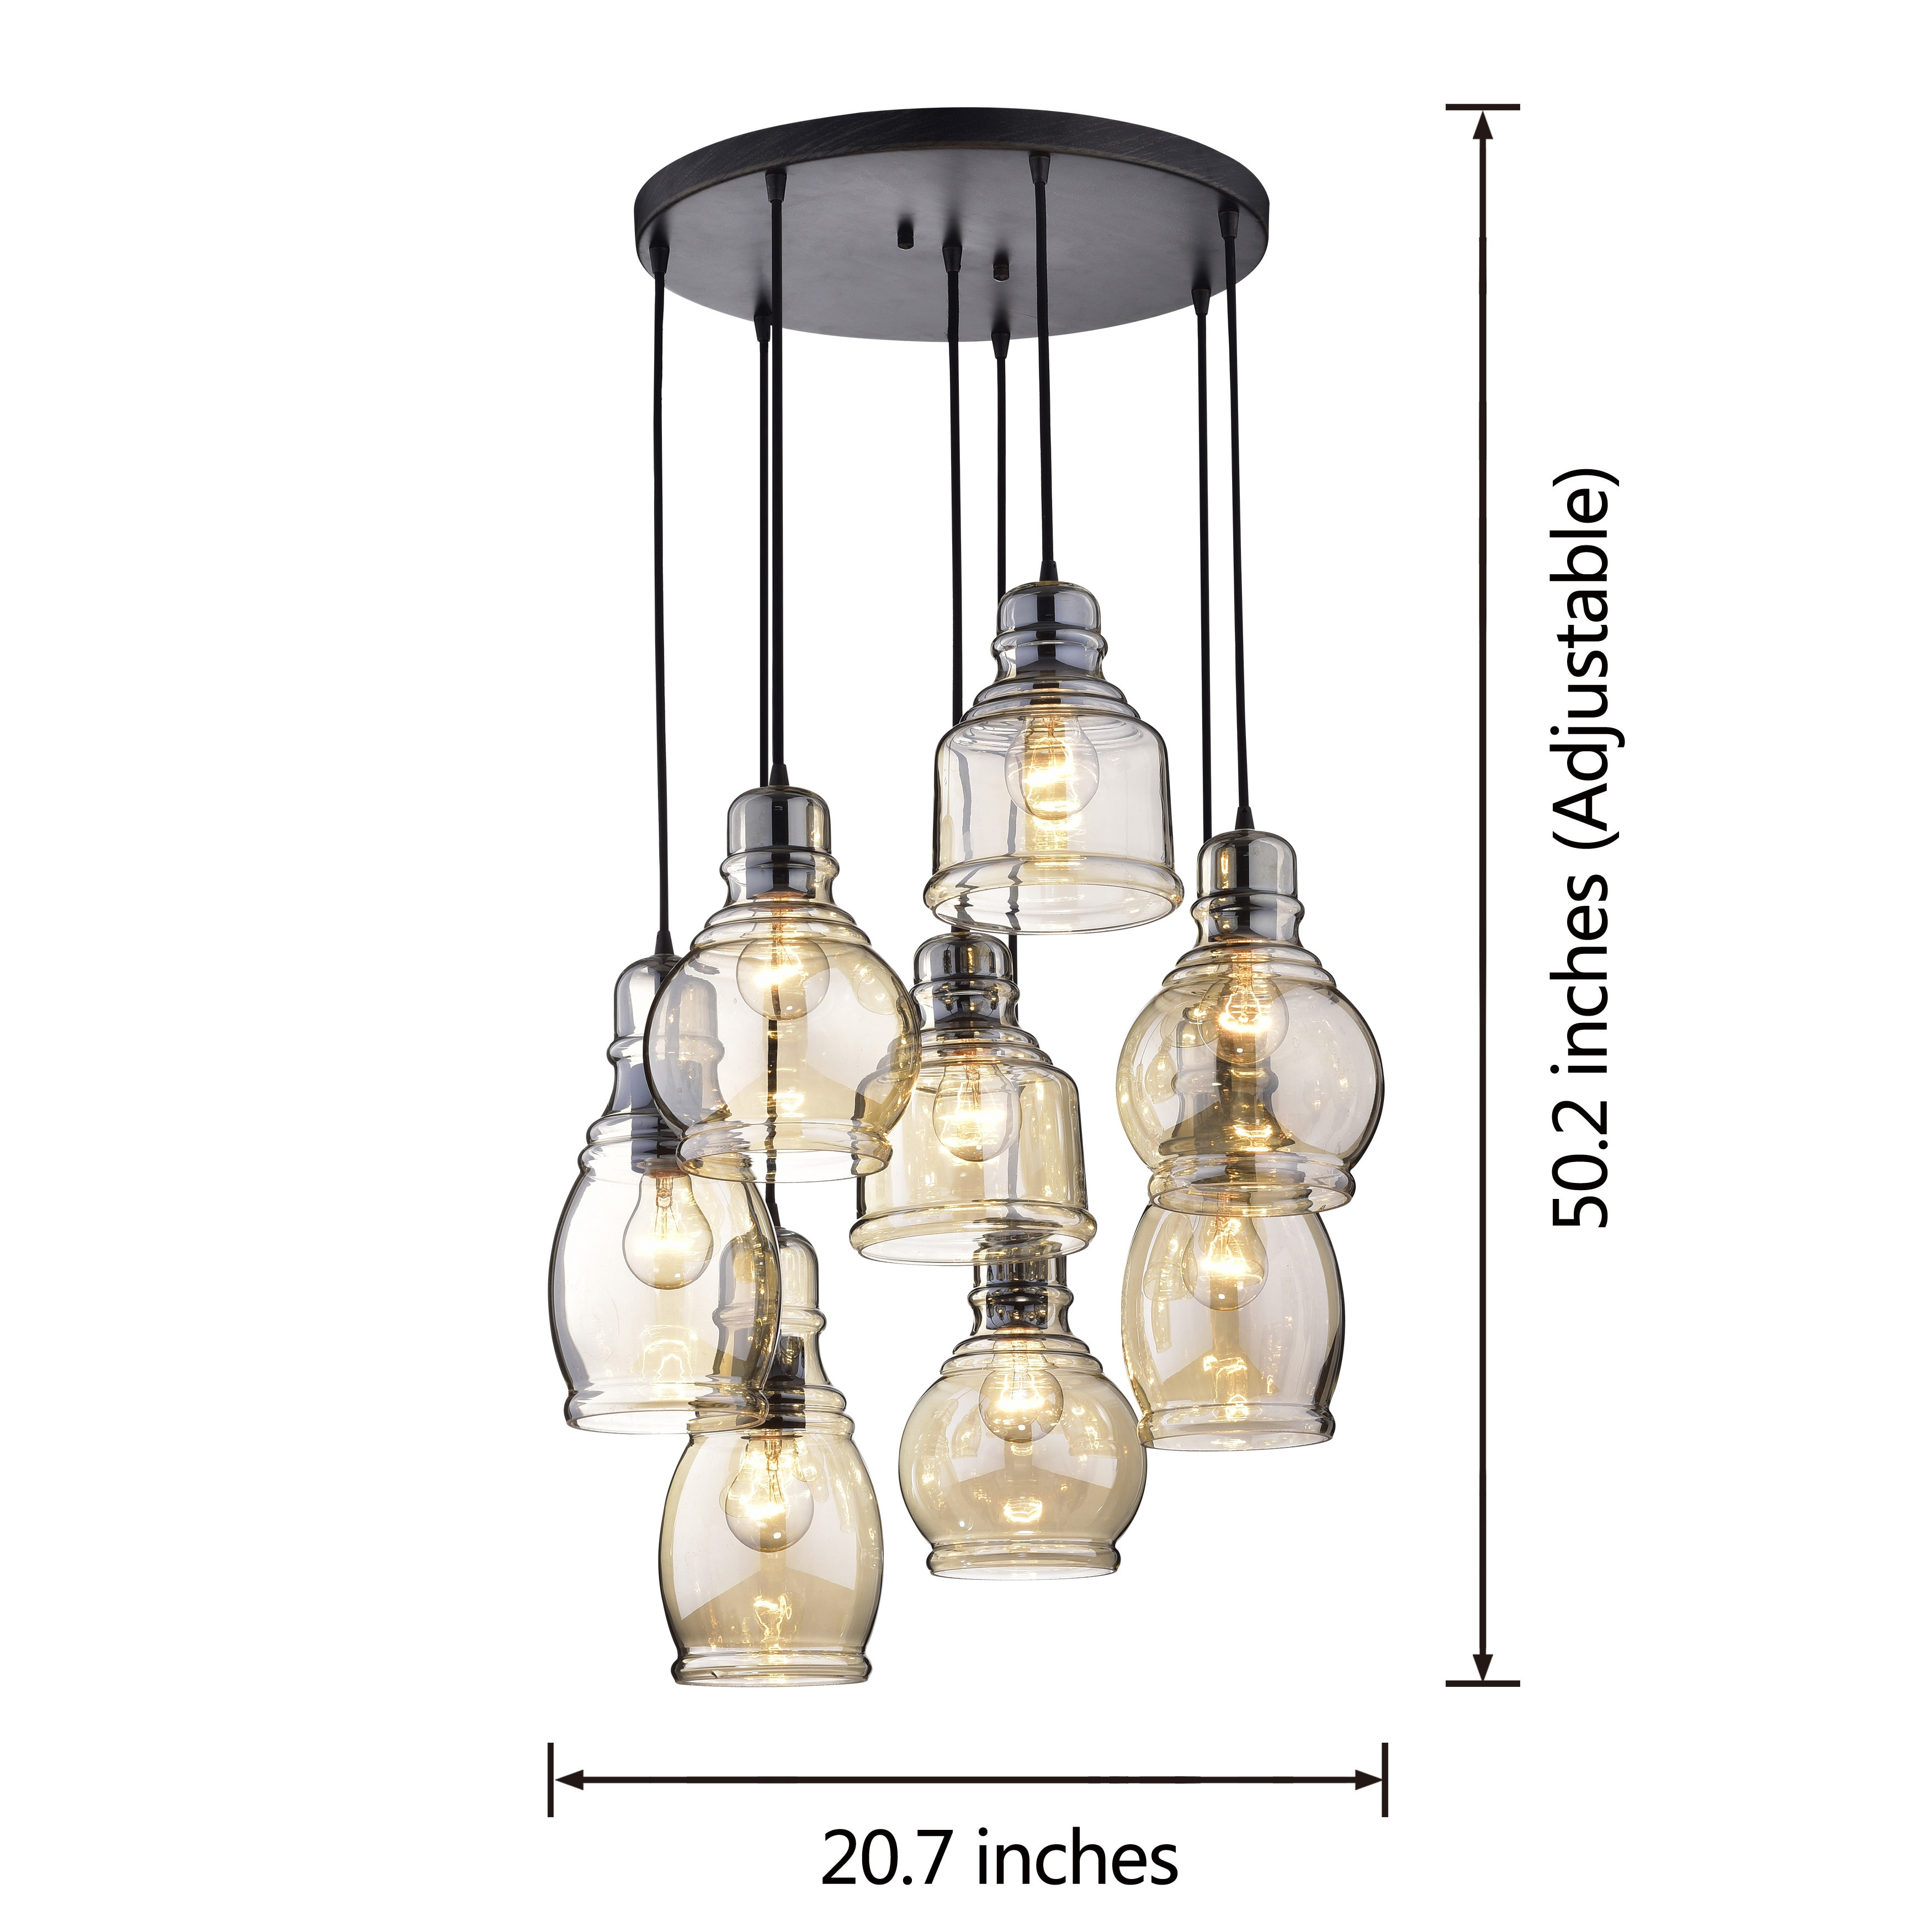 Light Chrome Crystal Chandelier Mariana Cognac Gl Cer Pendant In Antique Black Finish Free Shipping Today Com 20163267